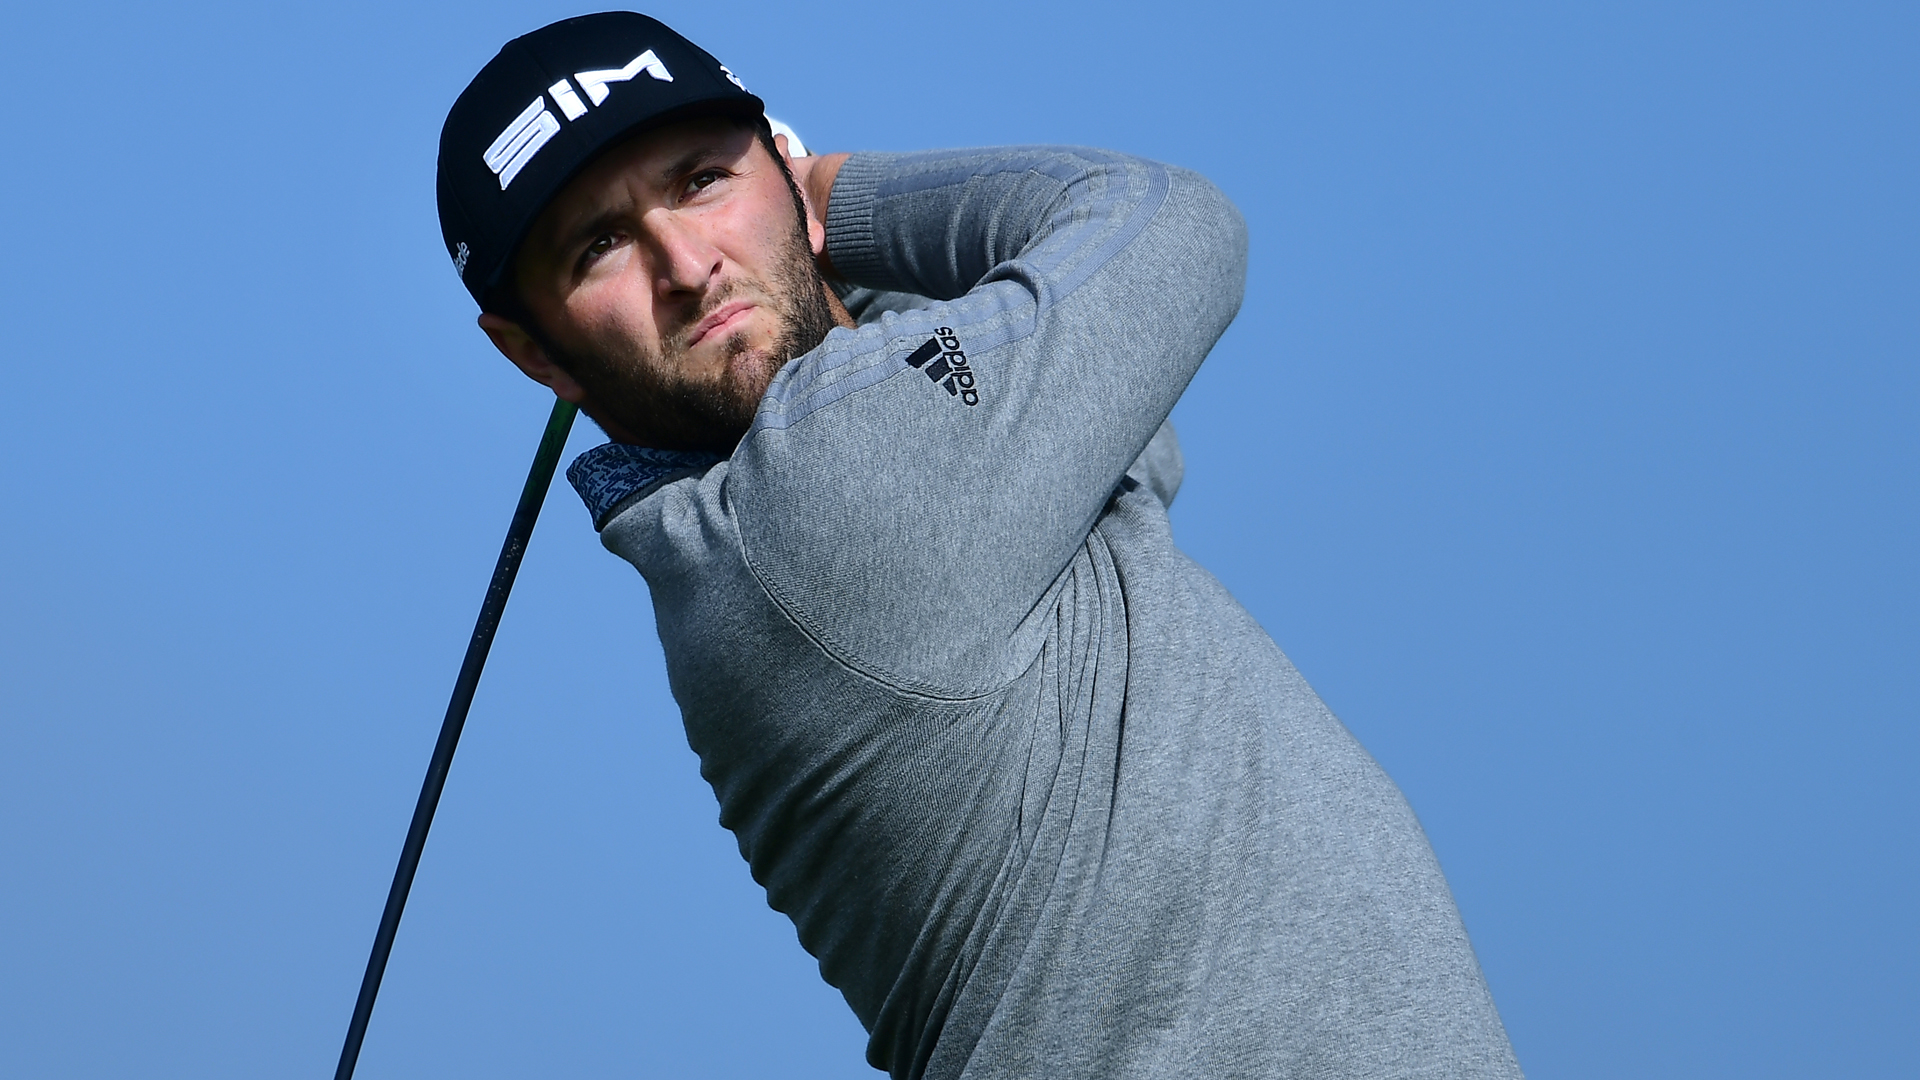 Jon Rahm leads at Torrey Pines; Tiger Woods five shots back